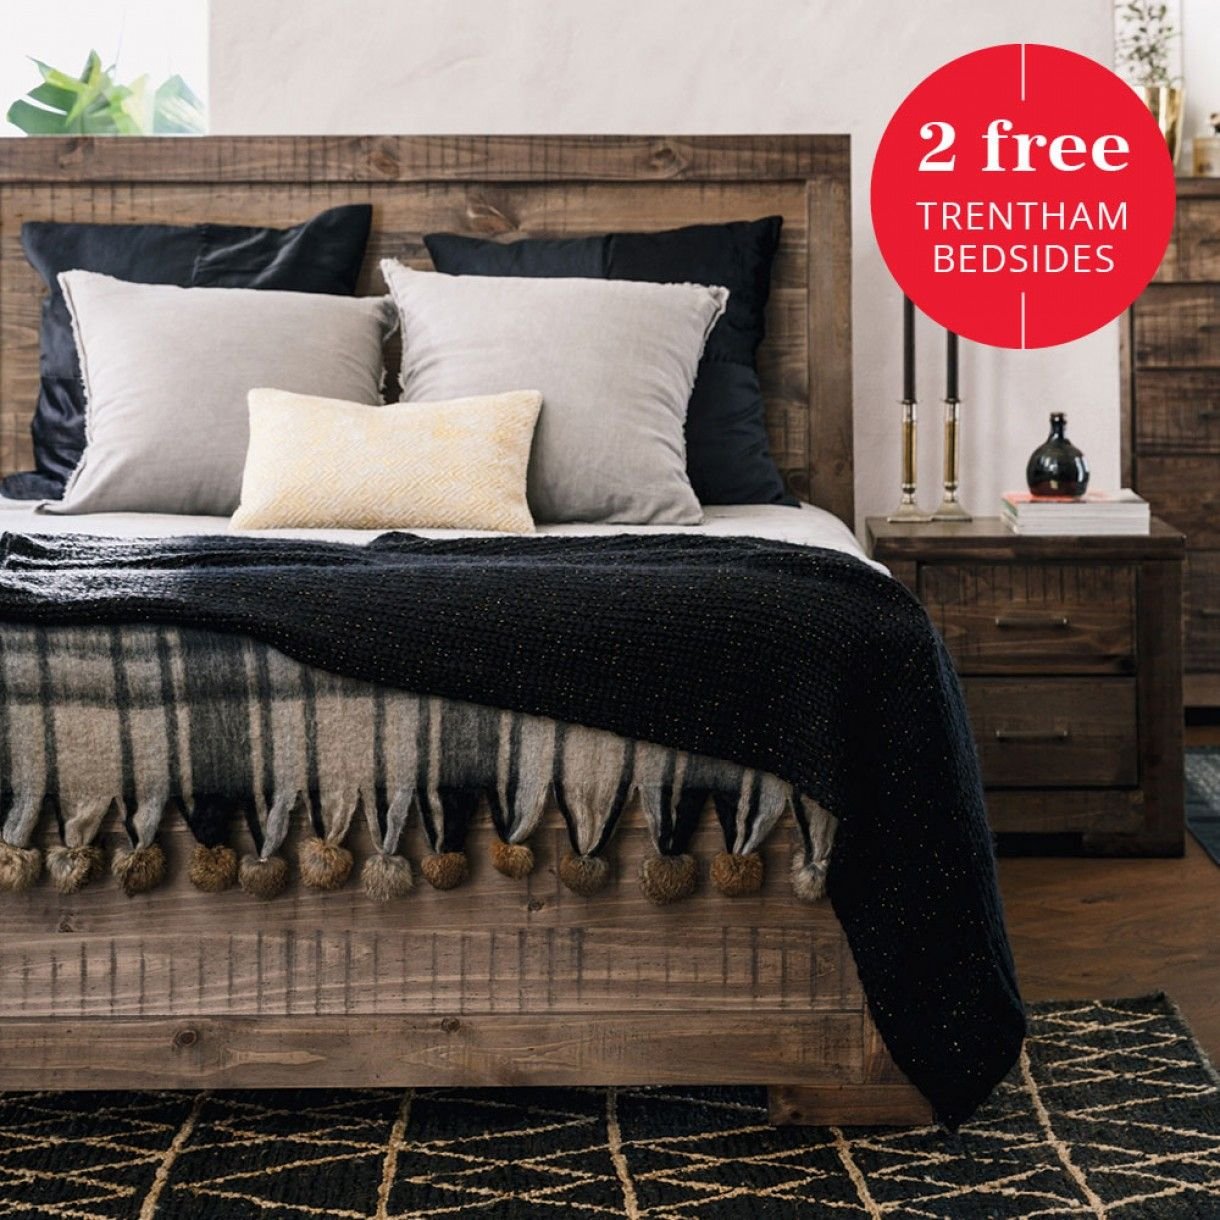 trentham queen bed homey pinterest wood beds queen beds and